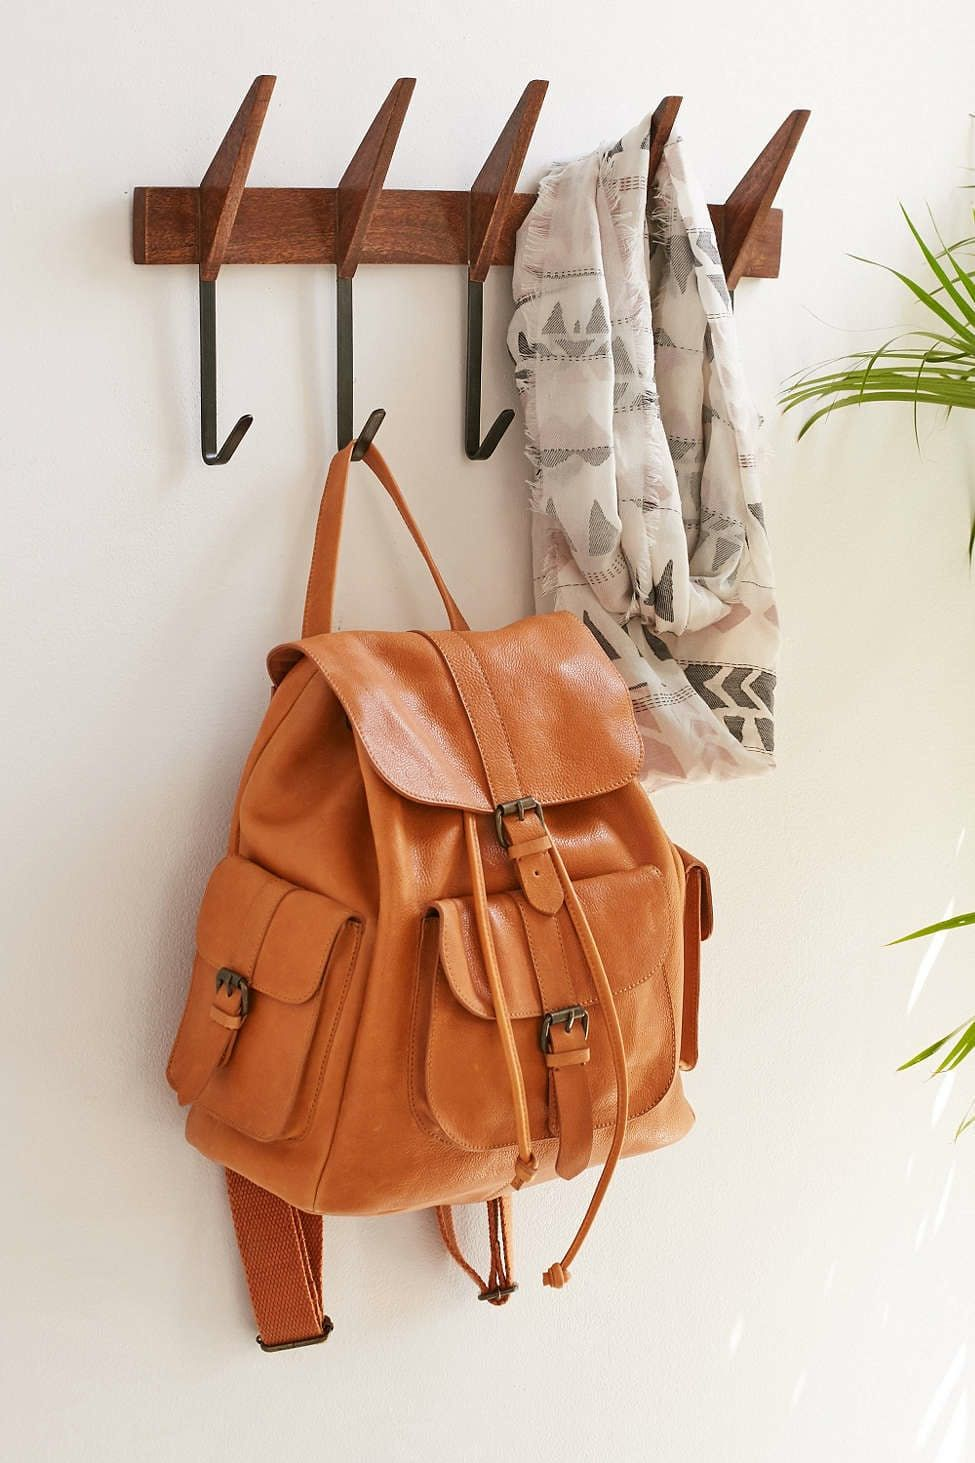 Off The Hook: The Best Modern Coat Hooks U2014 Annual Guide 2017